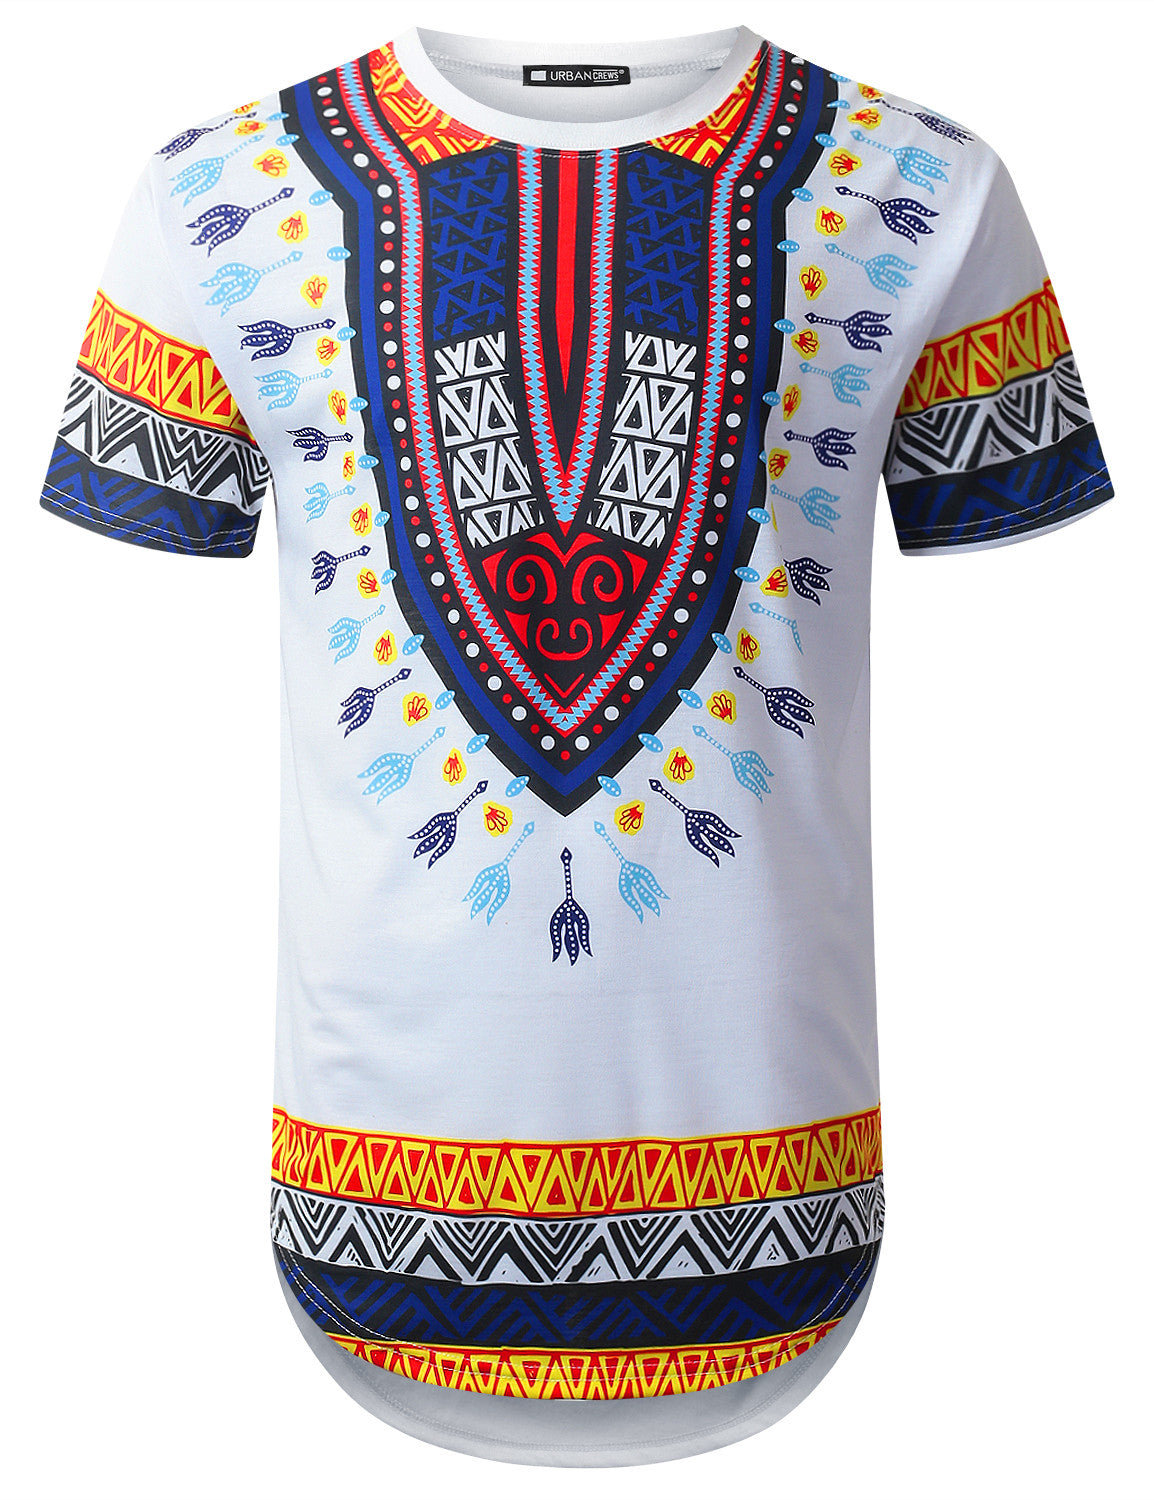 WHITE Aztec Dashiki Longline T-shirt - URBANCREWS